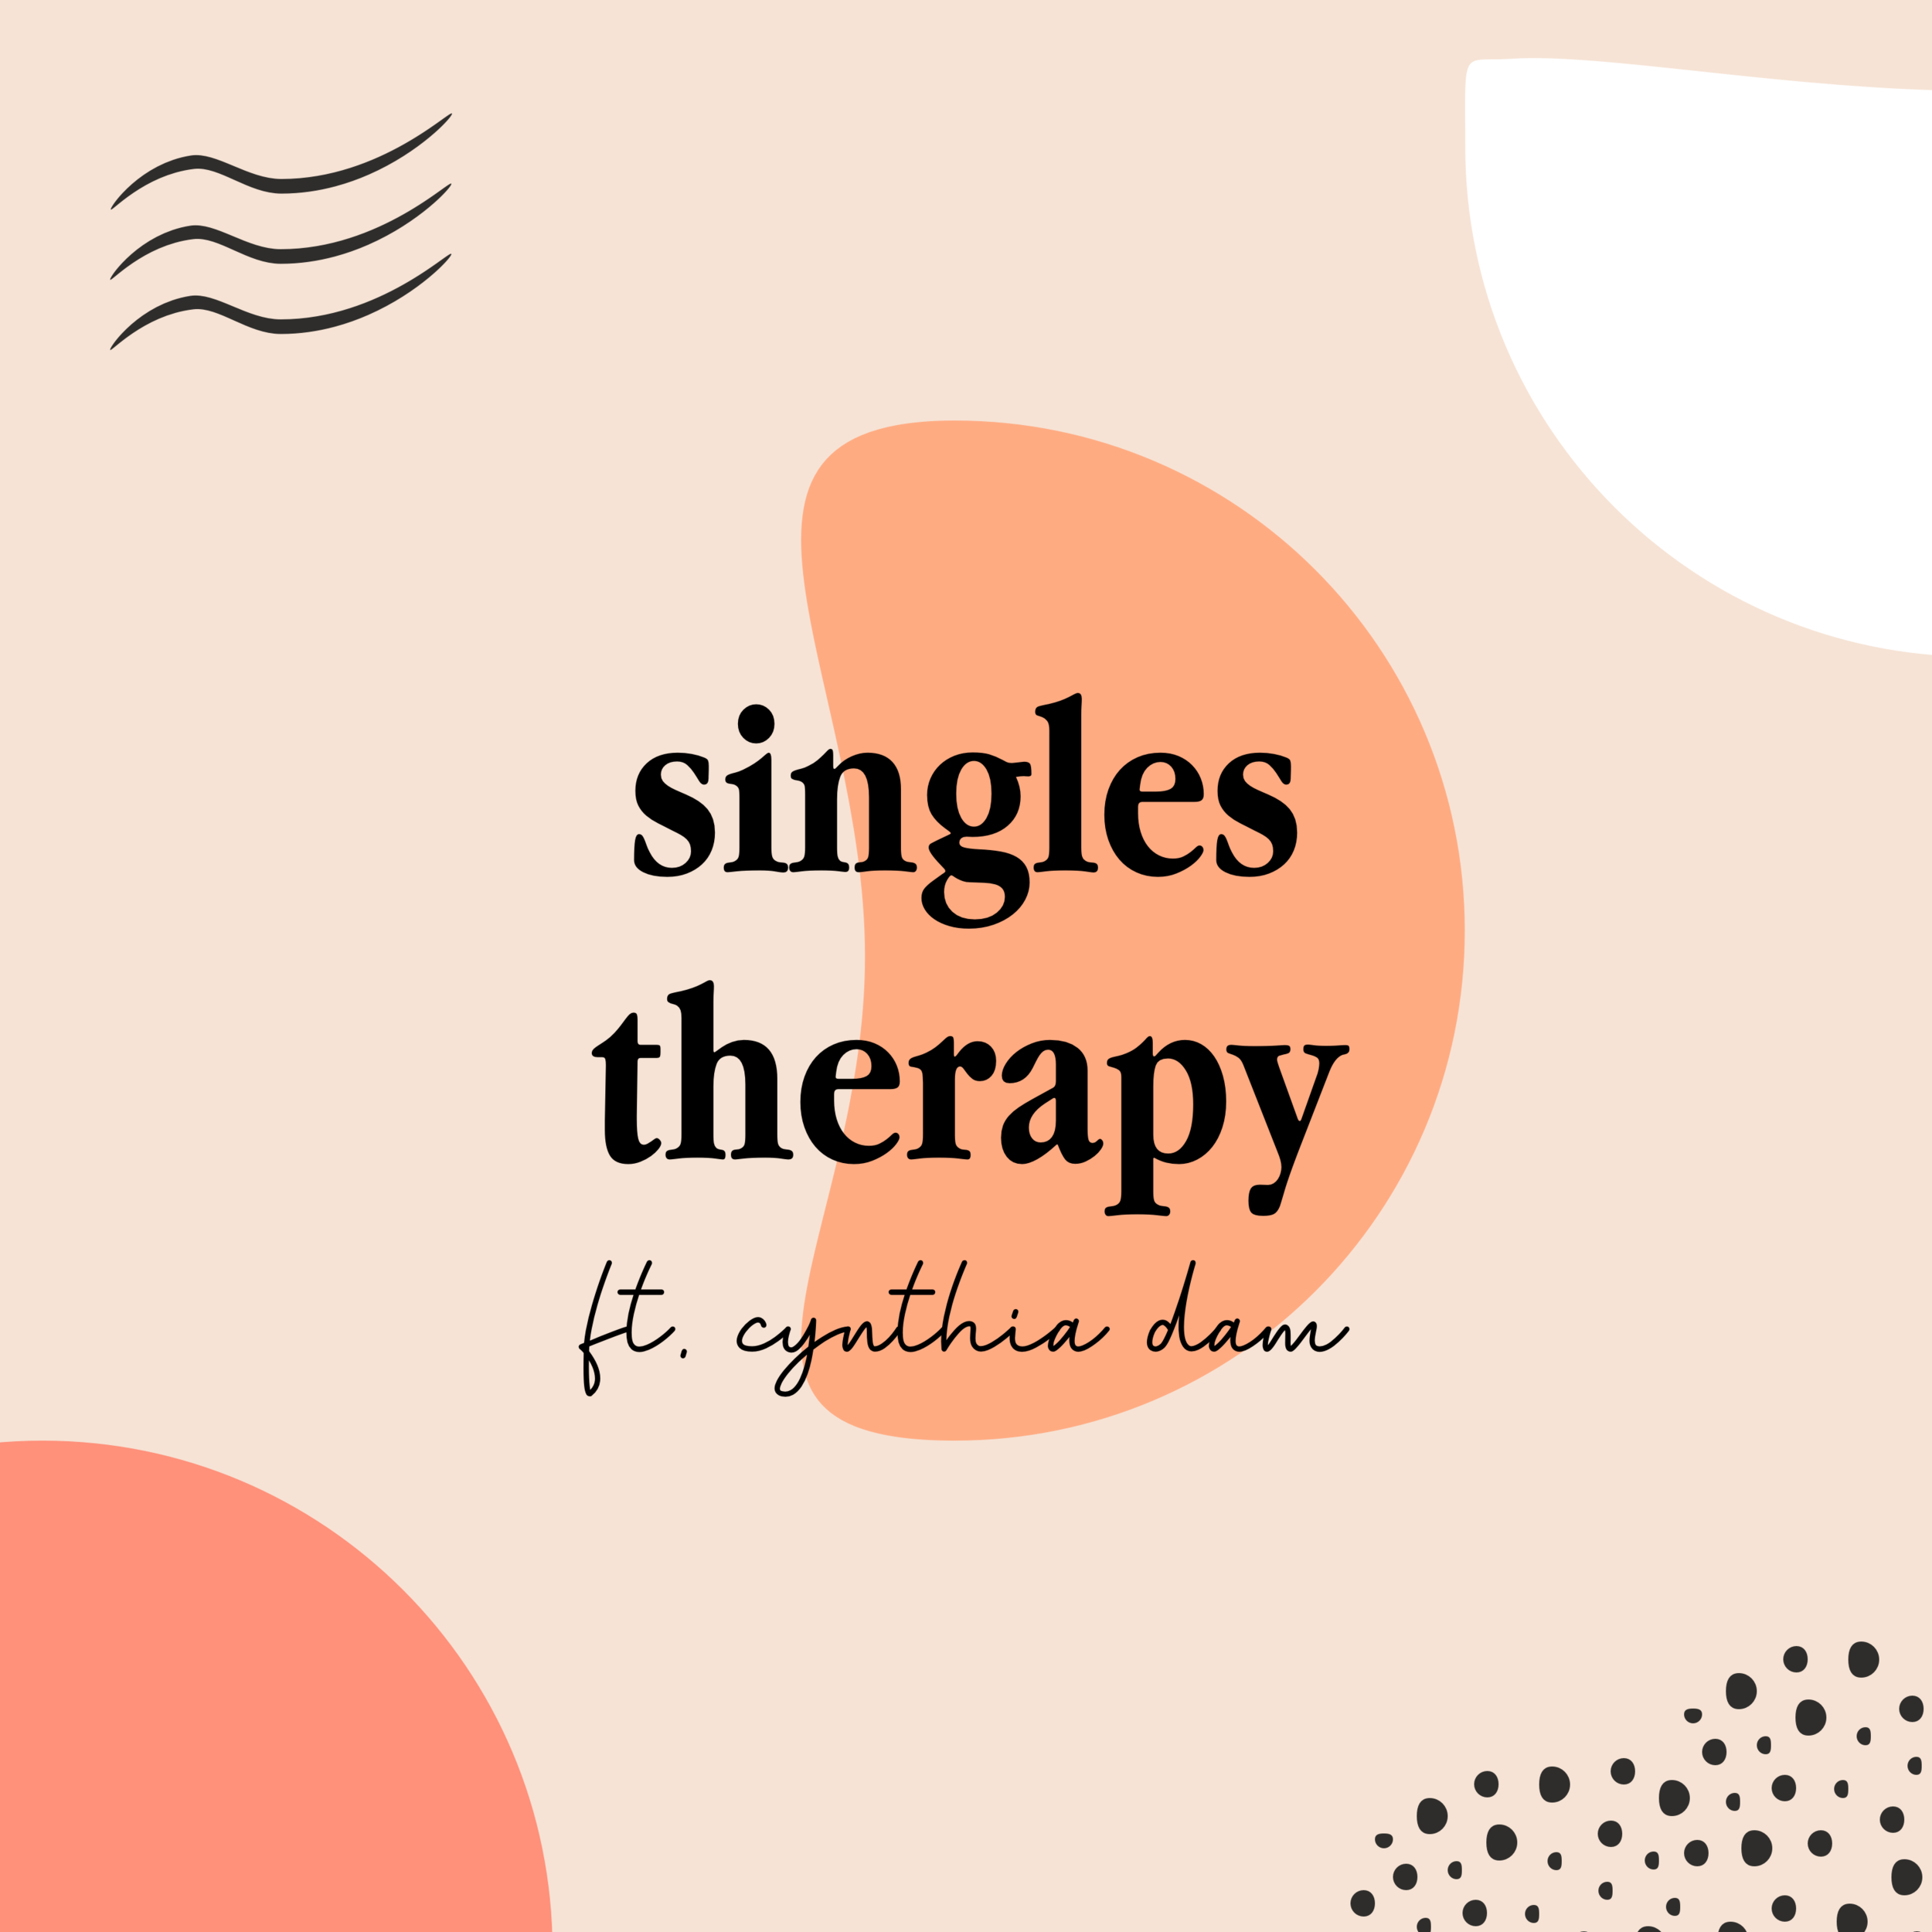 singles therapy cynthia dam.png